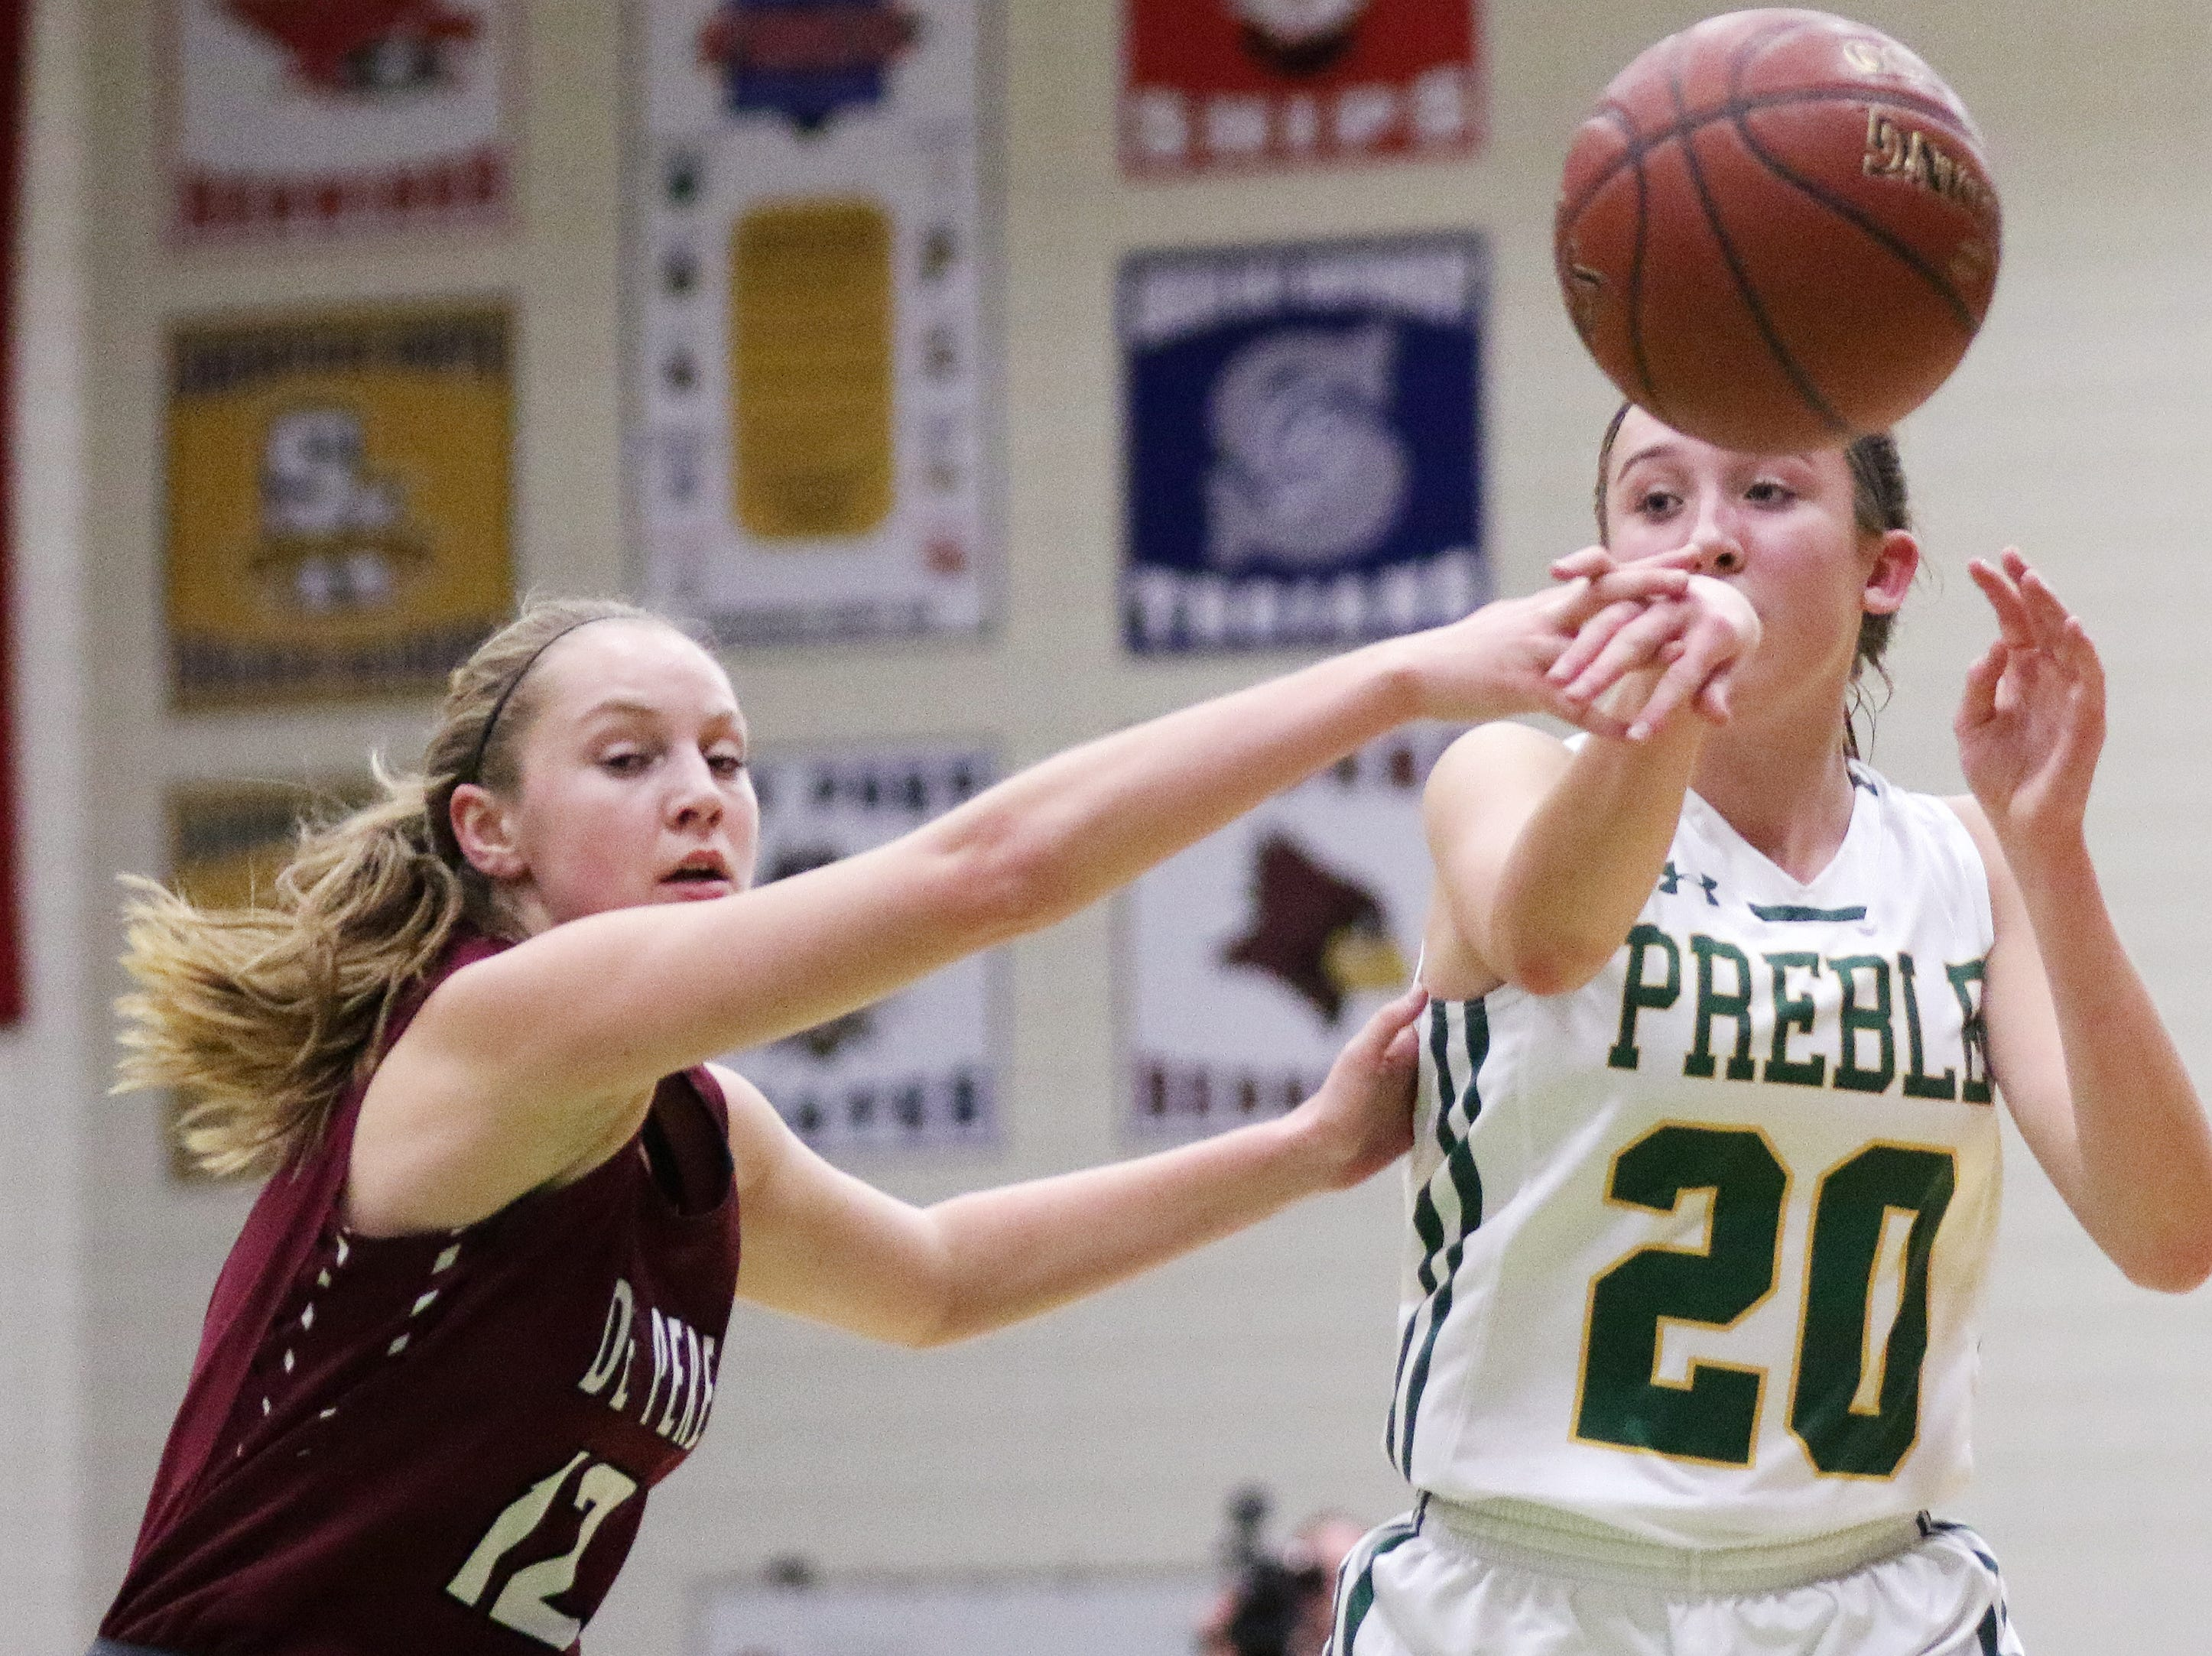 Green Bay Preble's Carley Duffney (20) passes out of pressure from De Pere's Elena Miller (12) in a girls basketball game at Preble high school on Tuesday, January 8, 2019 in Green Bay, Wis.